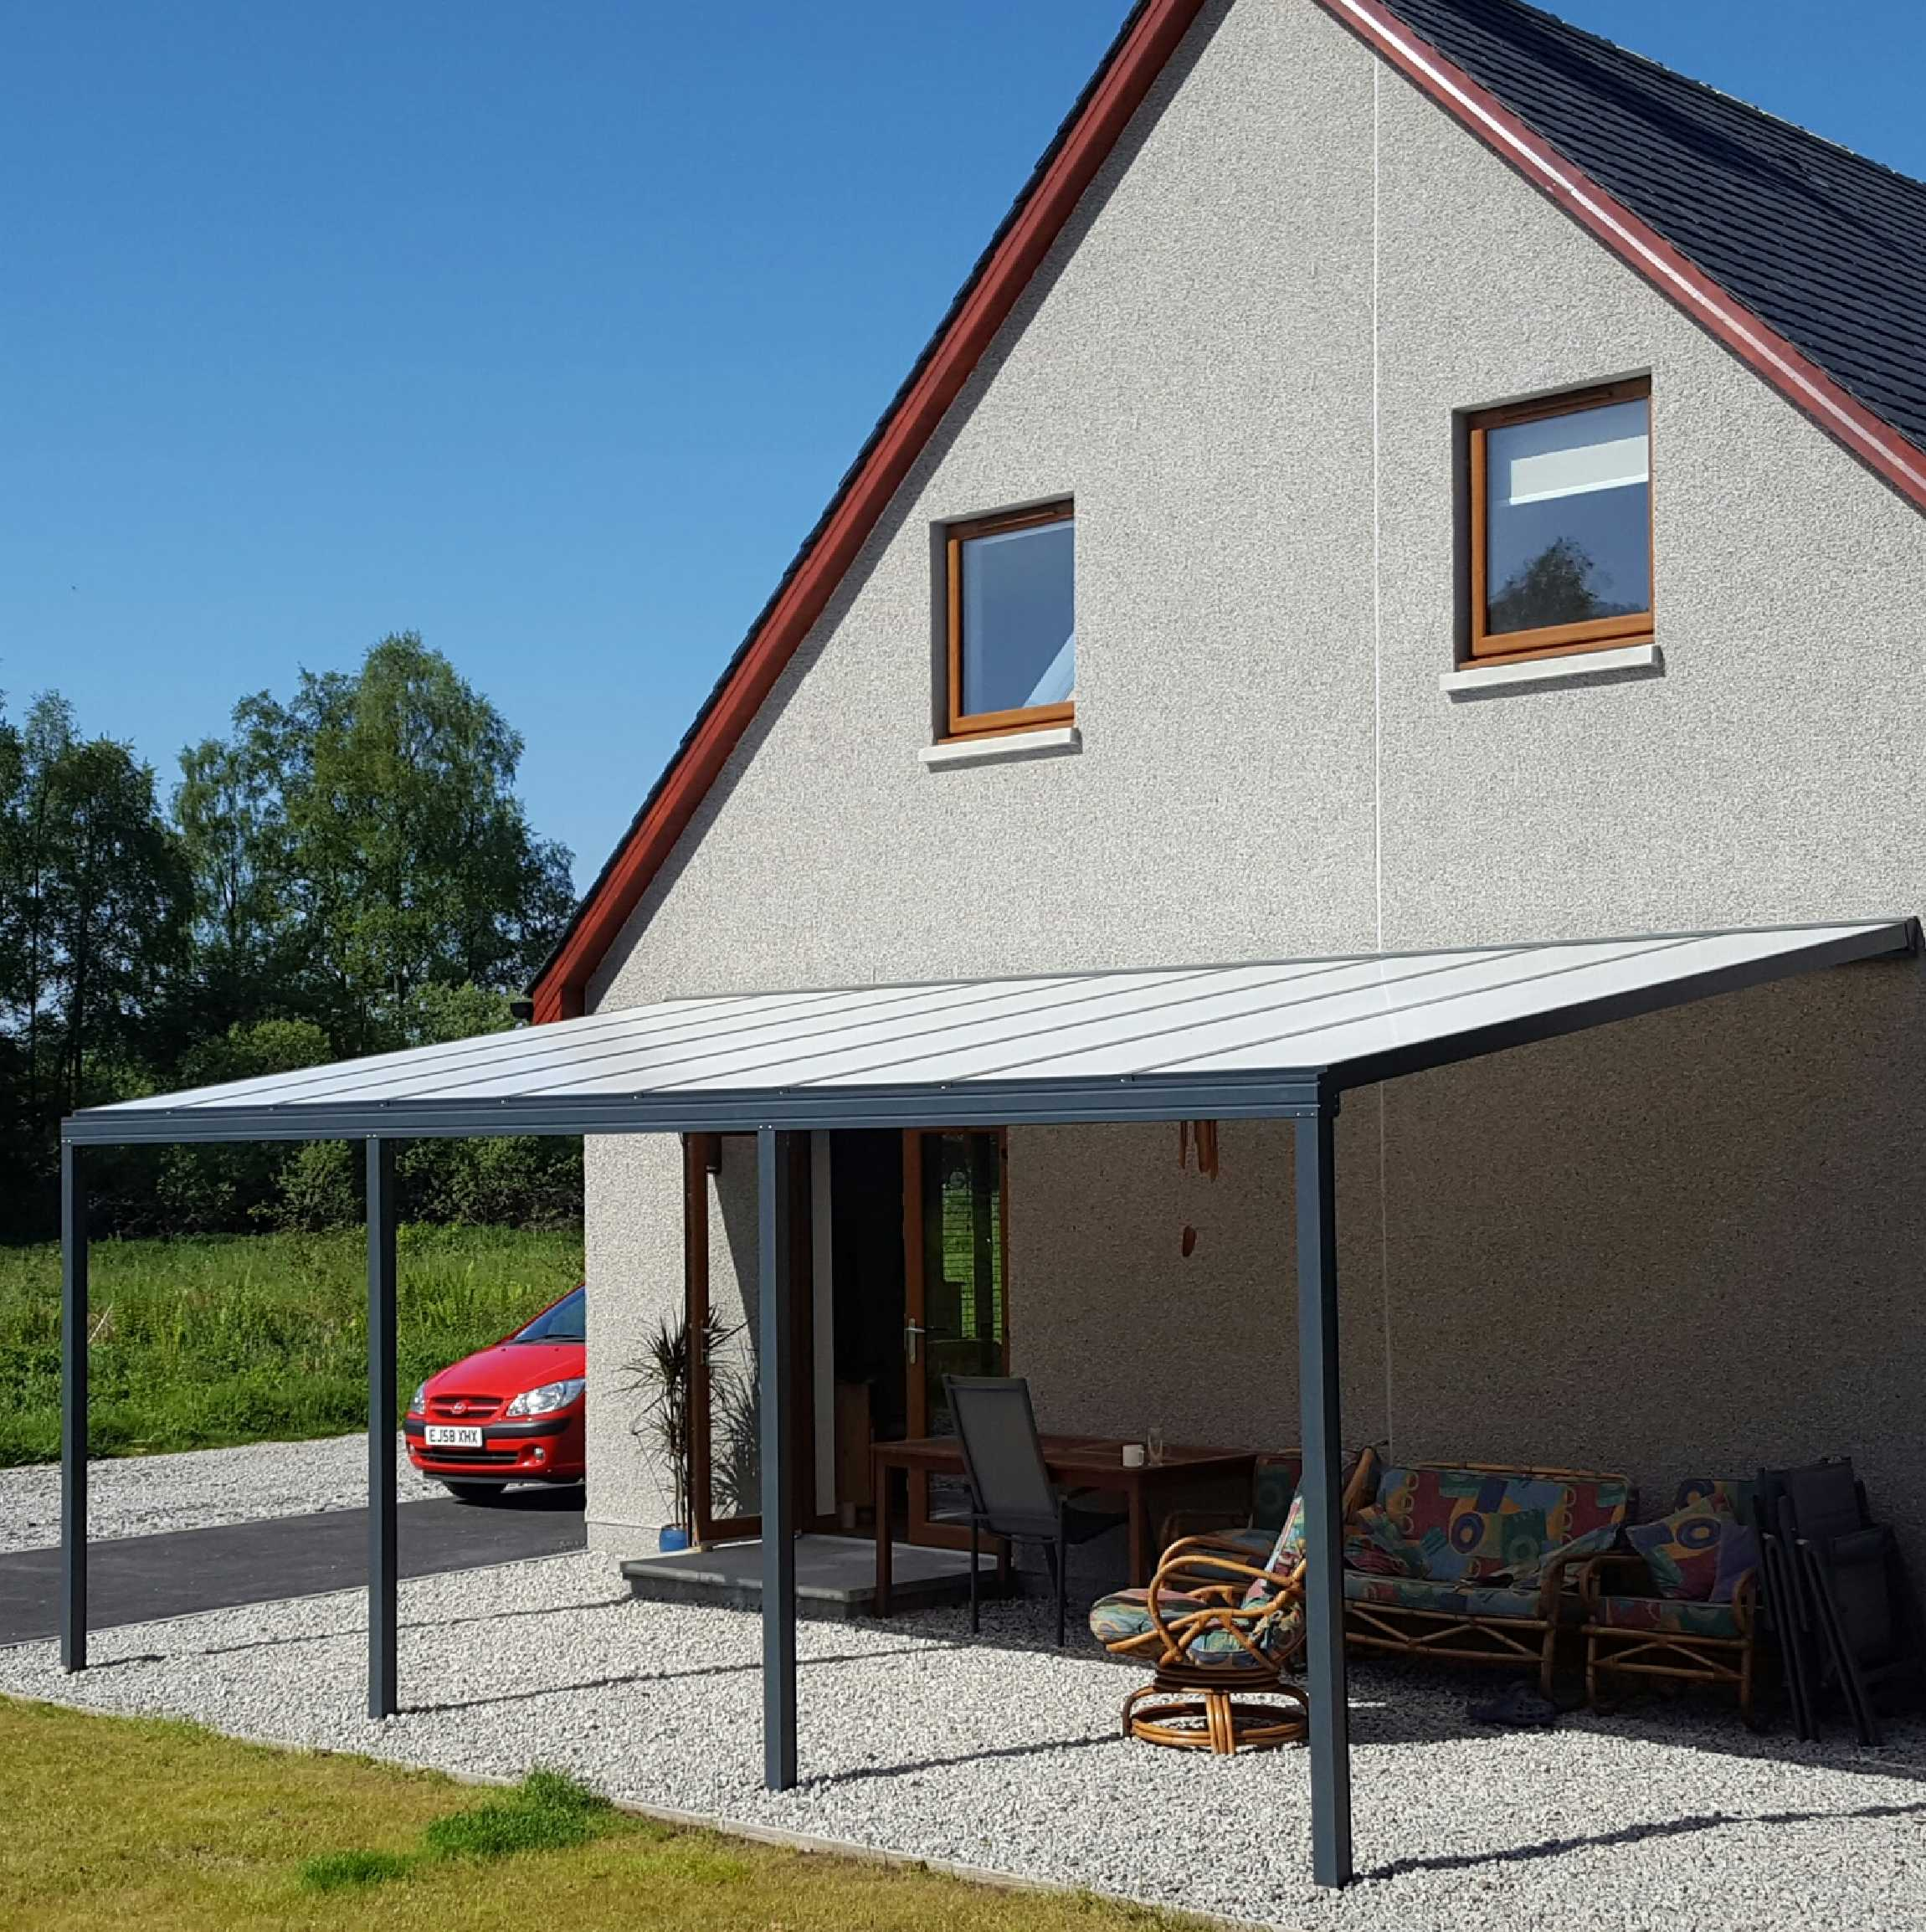 Great selection of Omega Smart Lean-To Canopy, Anthracite Grey, 16mm Polycarbonate Glazing - 9.6m (W) x 4.5m (P), (5) Supporting Posts